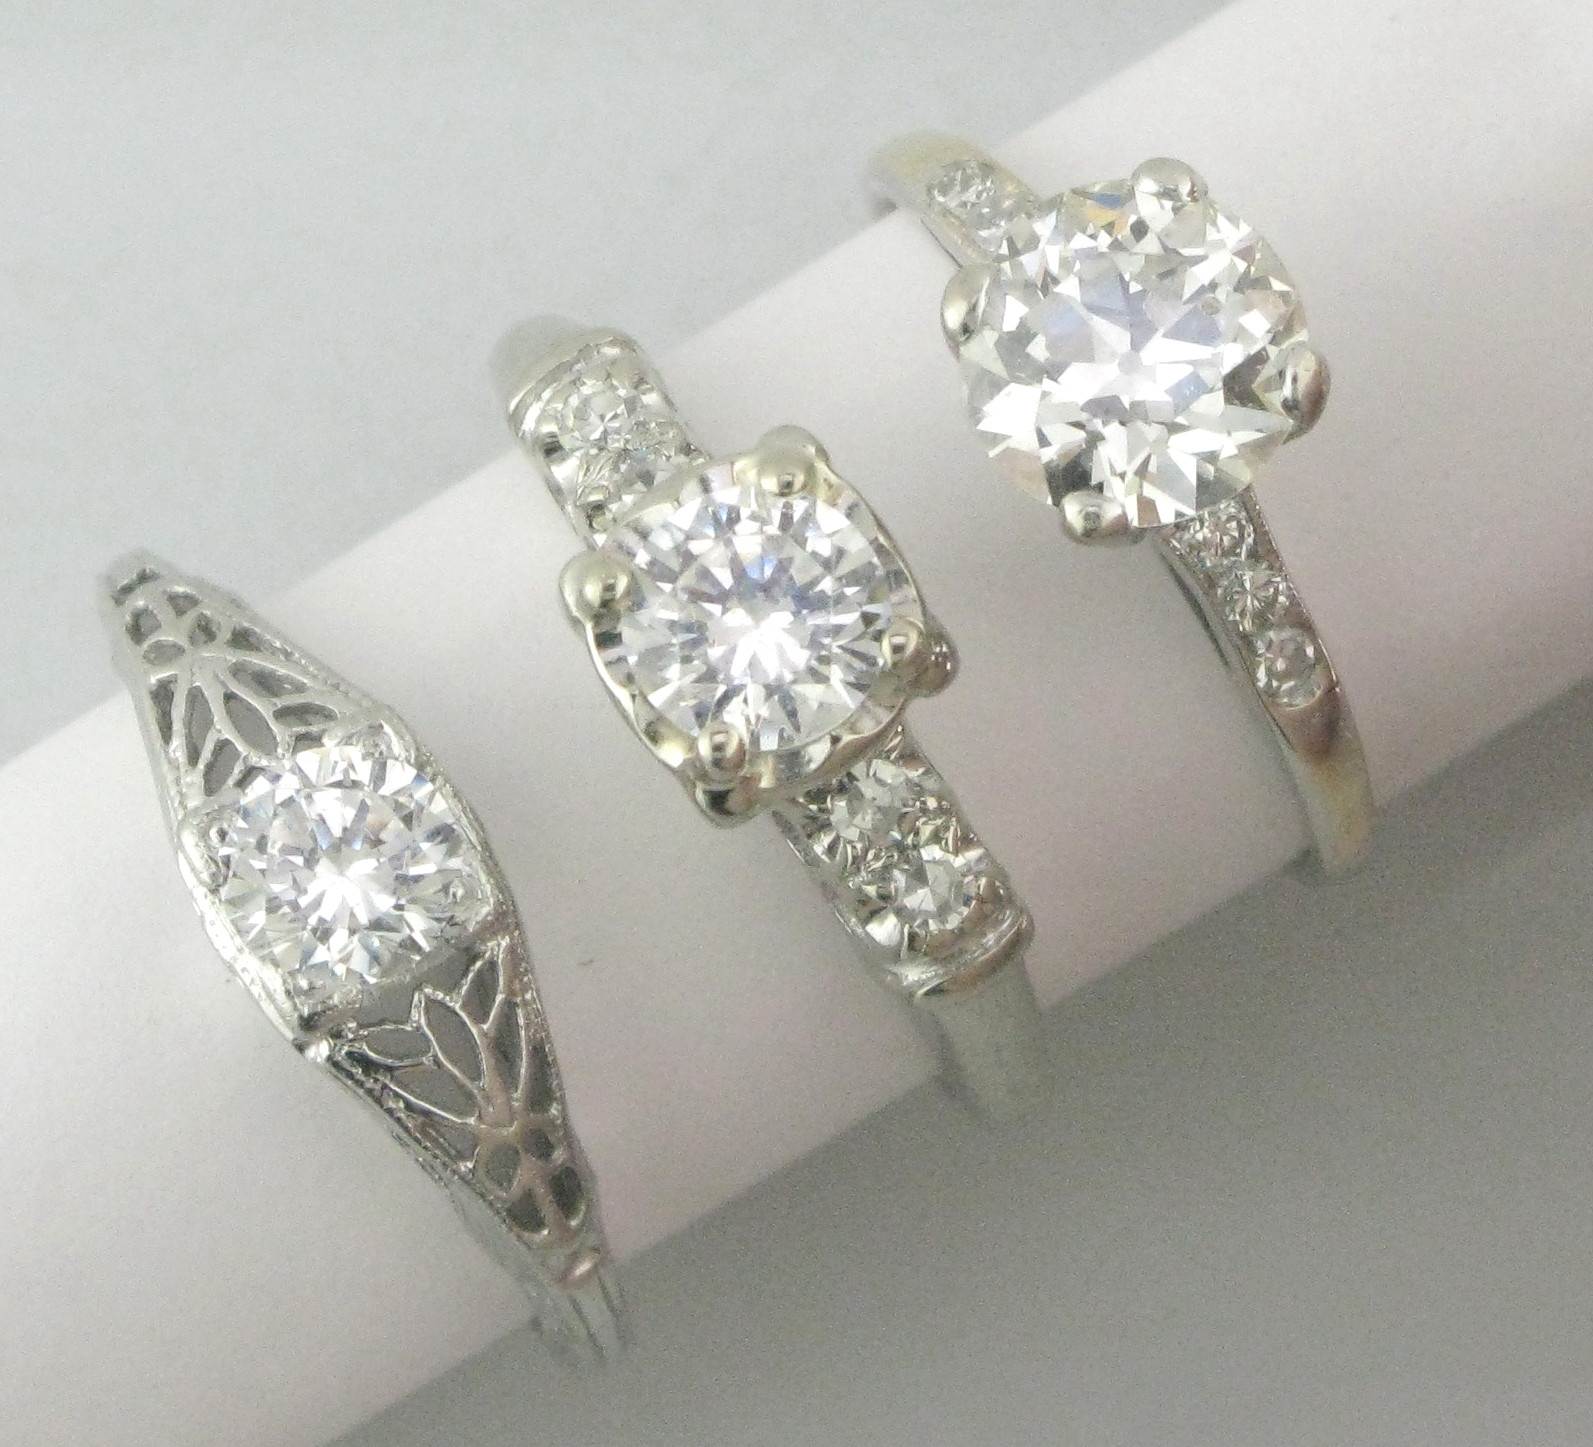 jewelry deleuse products band couture diamond bands janet estate designer fine img